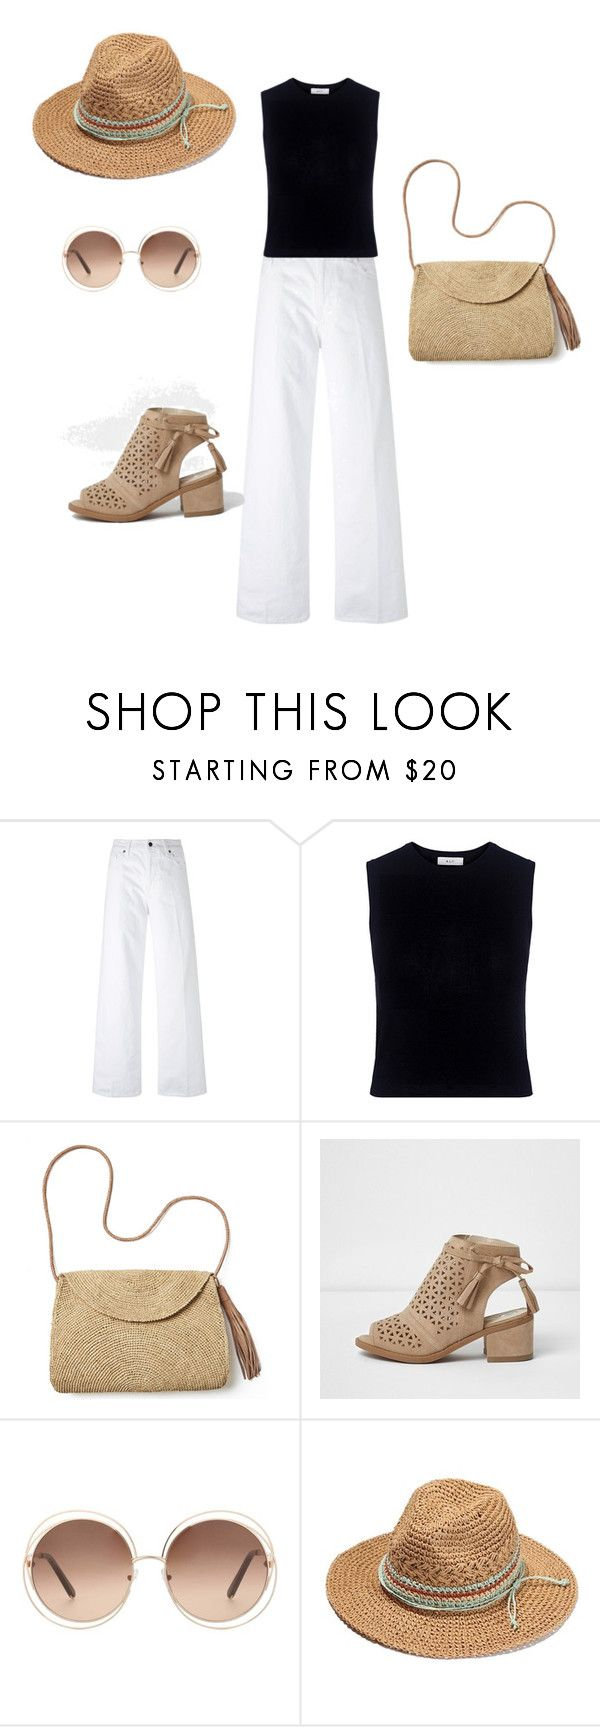 """trian inv"" by indunna-estetica-integral ❤ liked on Polyvore featuring Vince, A.L.C., Mar y Sol and Chloé"